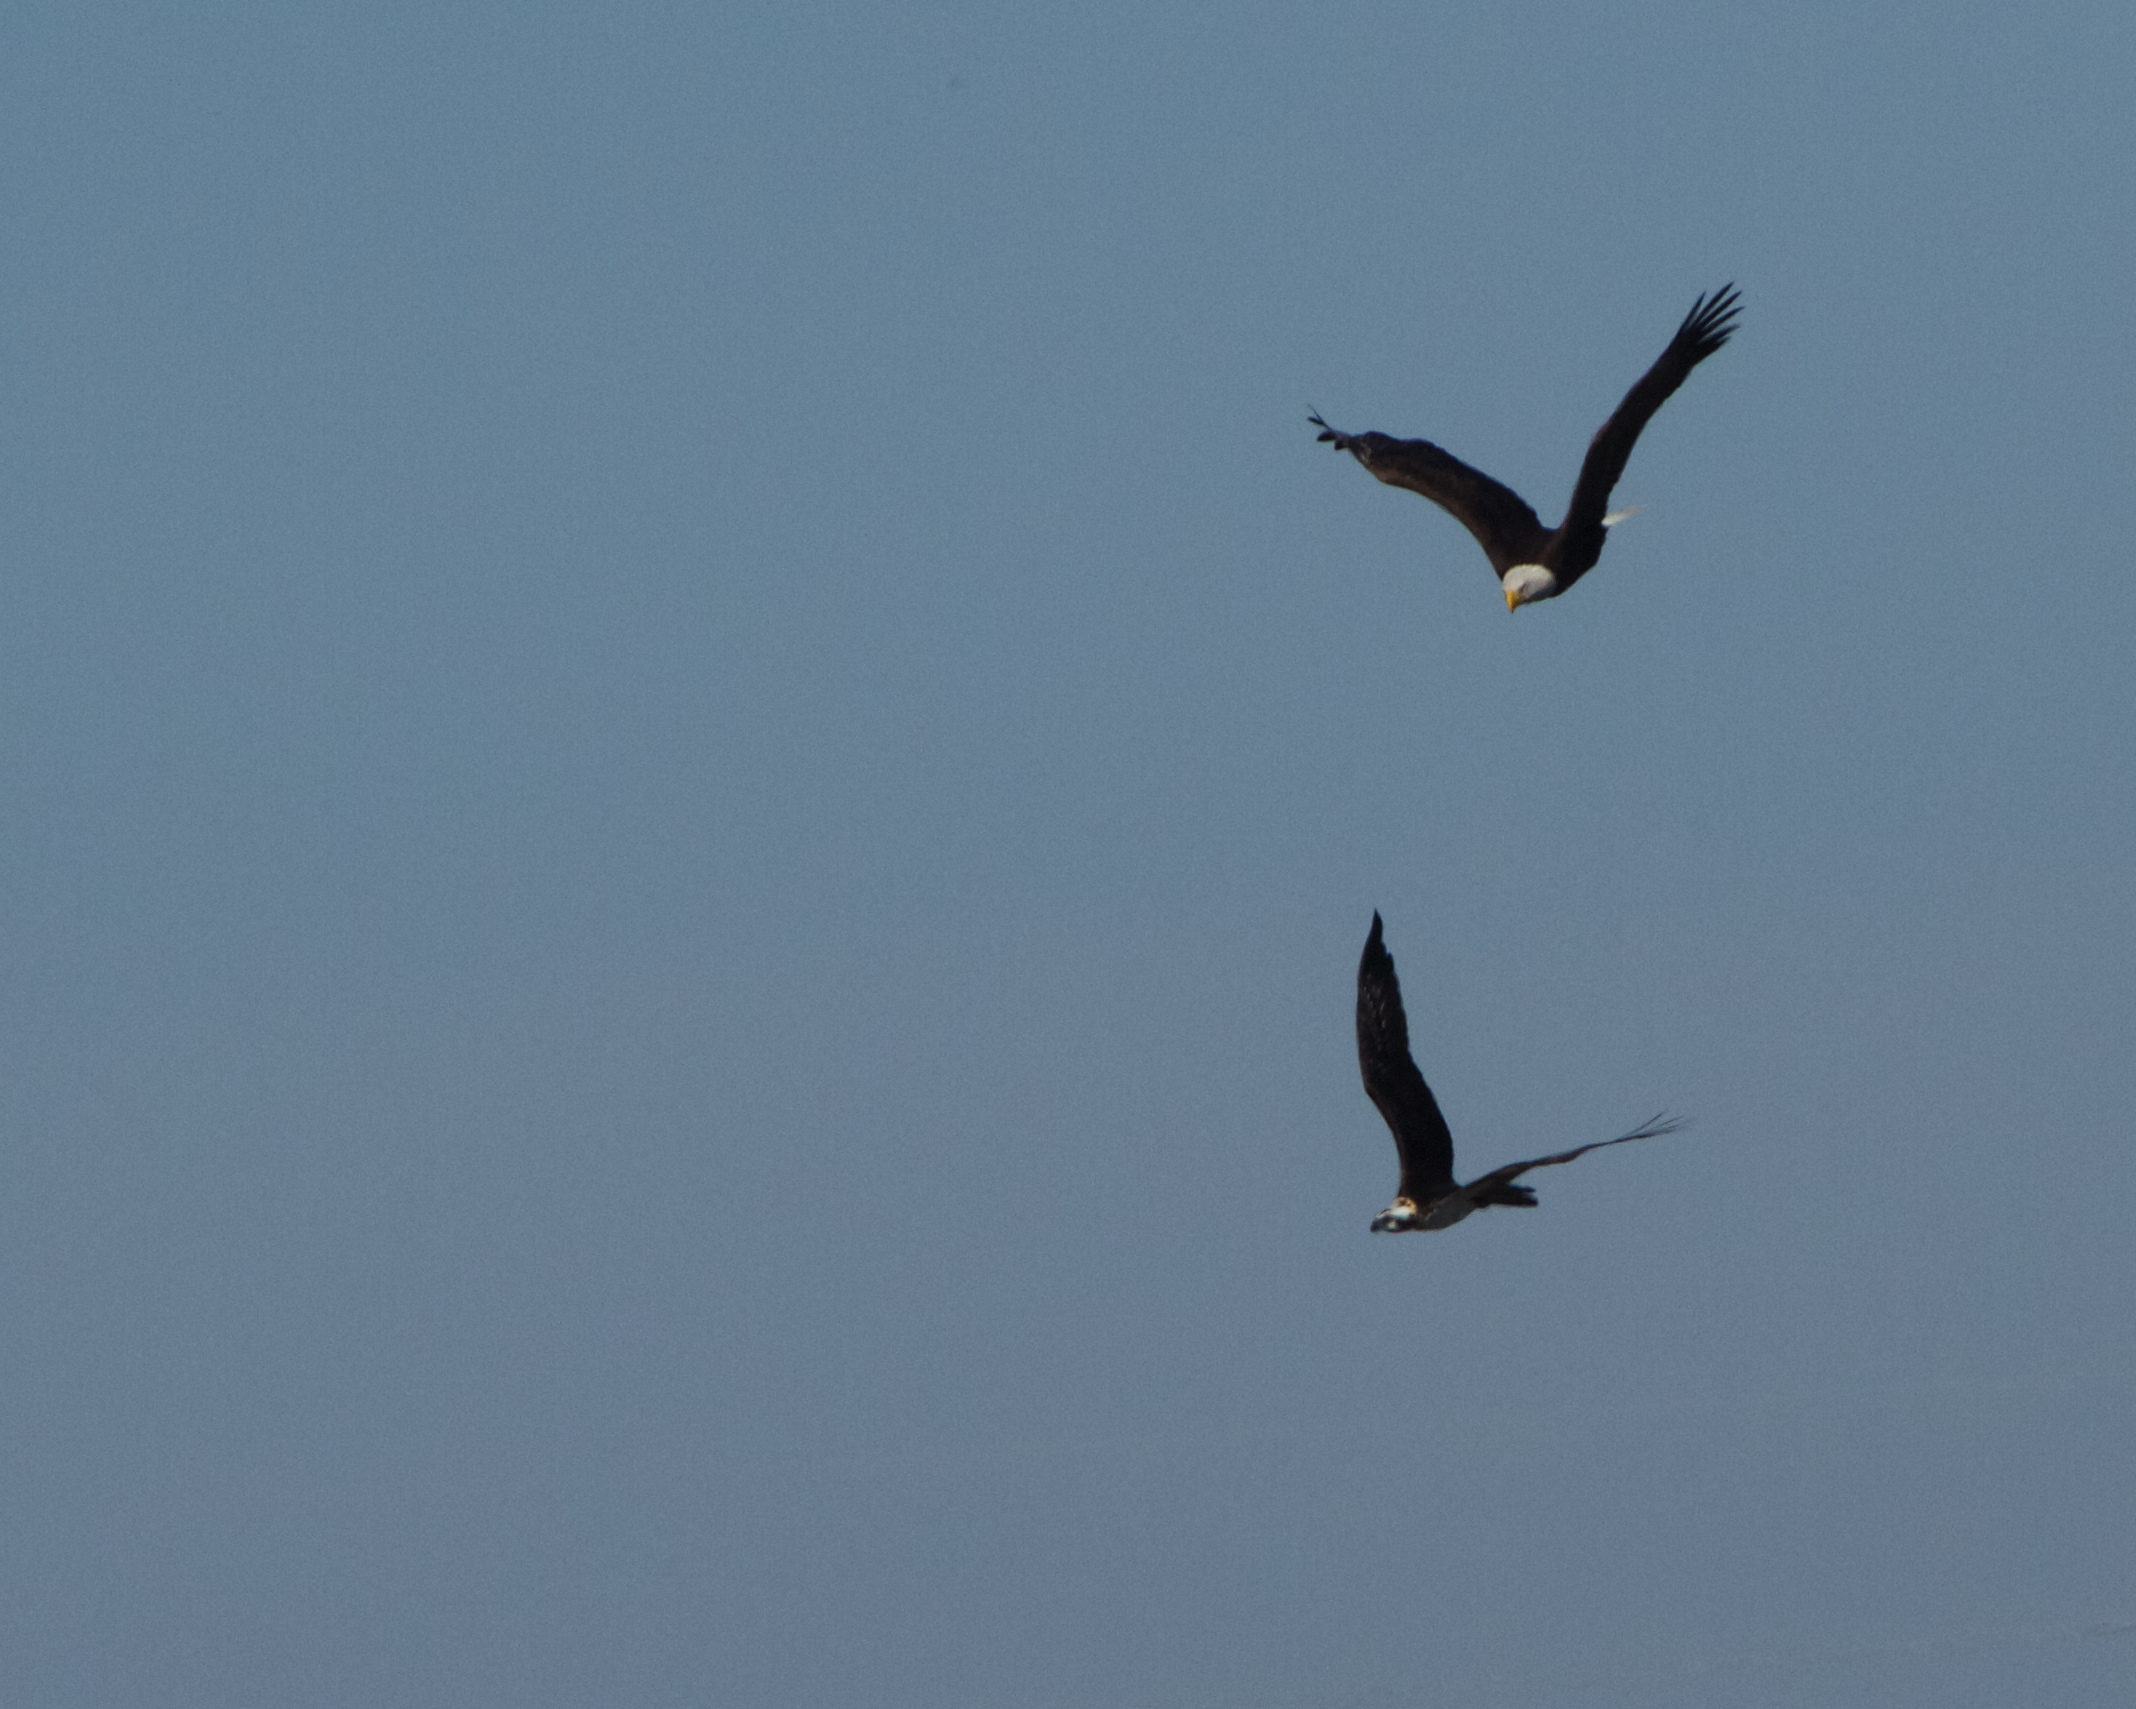 The adult gives chase. The Osprey dives and swoops.